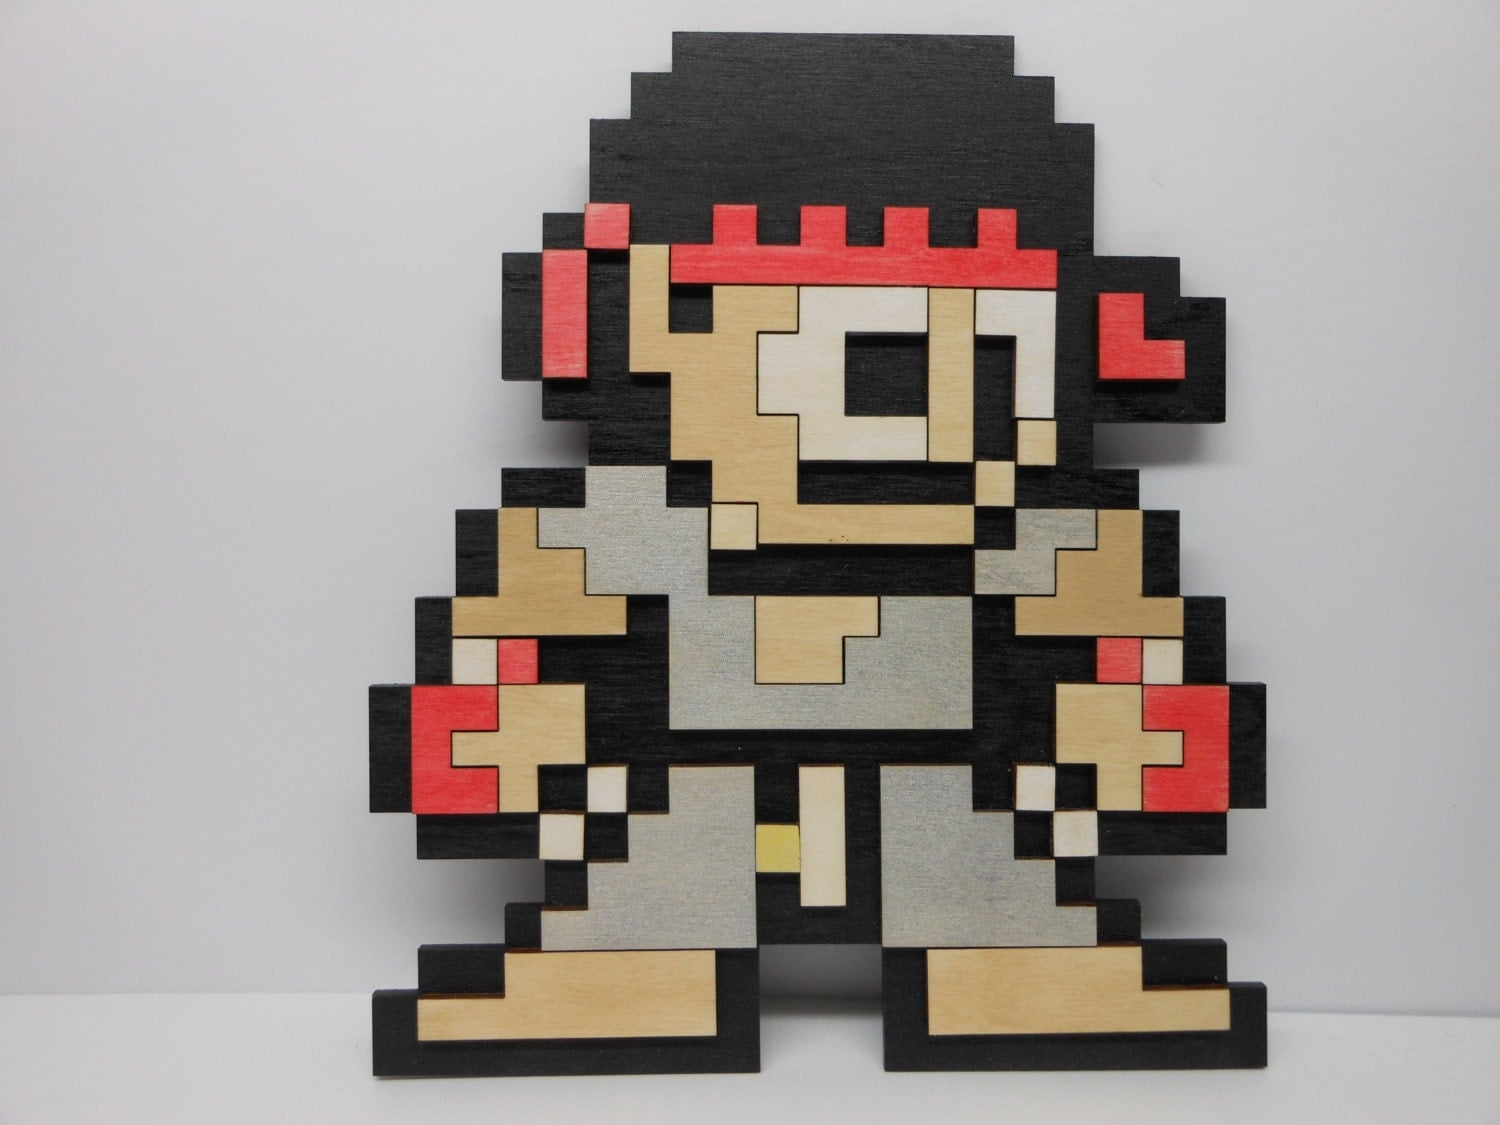 8 bit ryu from street fighter sf capcom art video game decor for 8 bit decoration